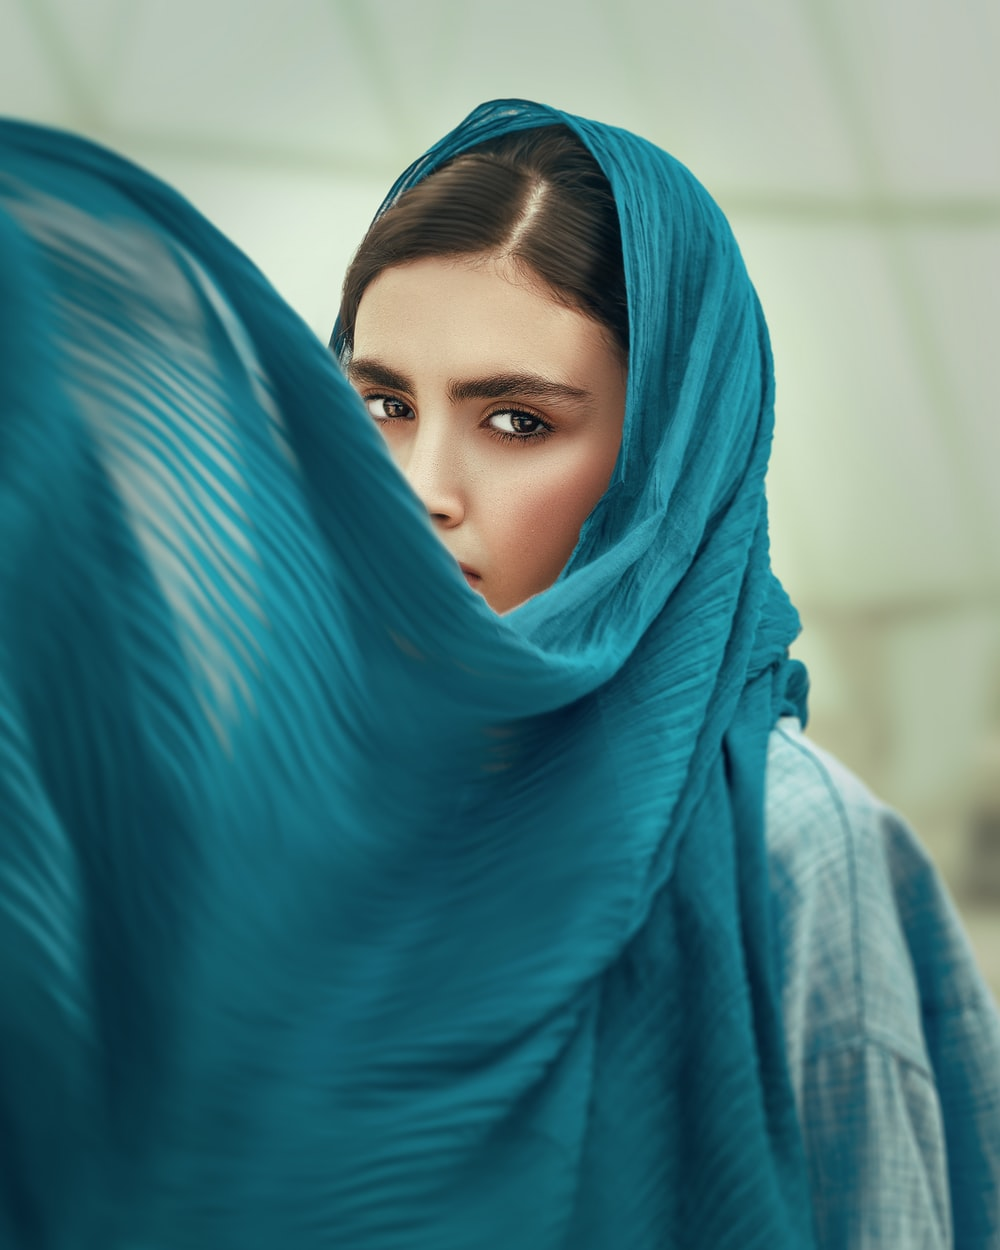 woman in blue hijab covering her face with blue textile